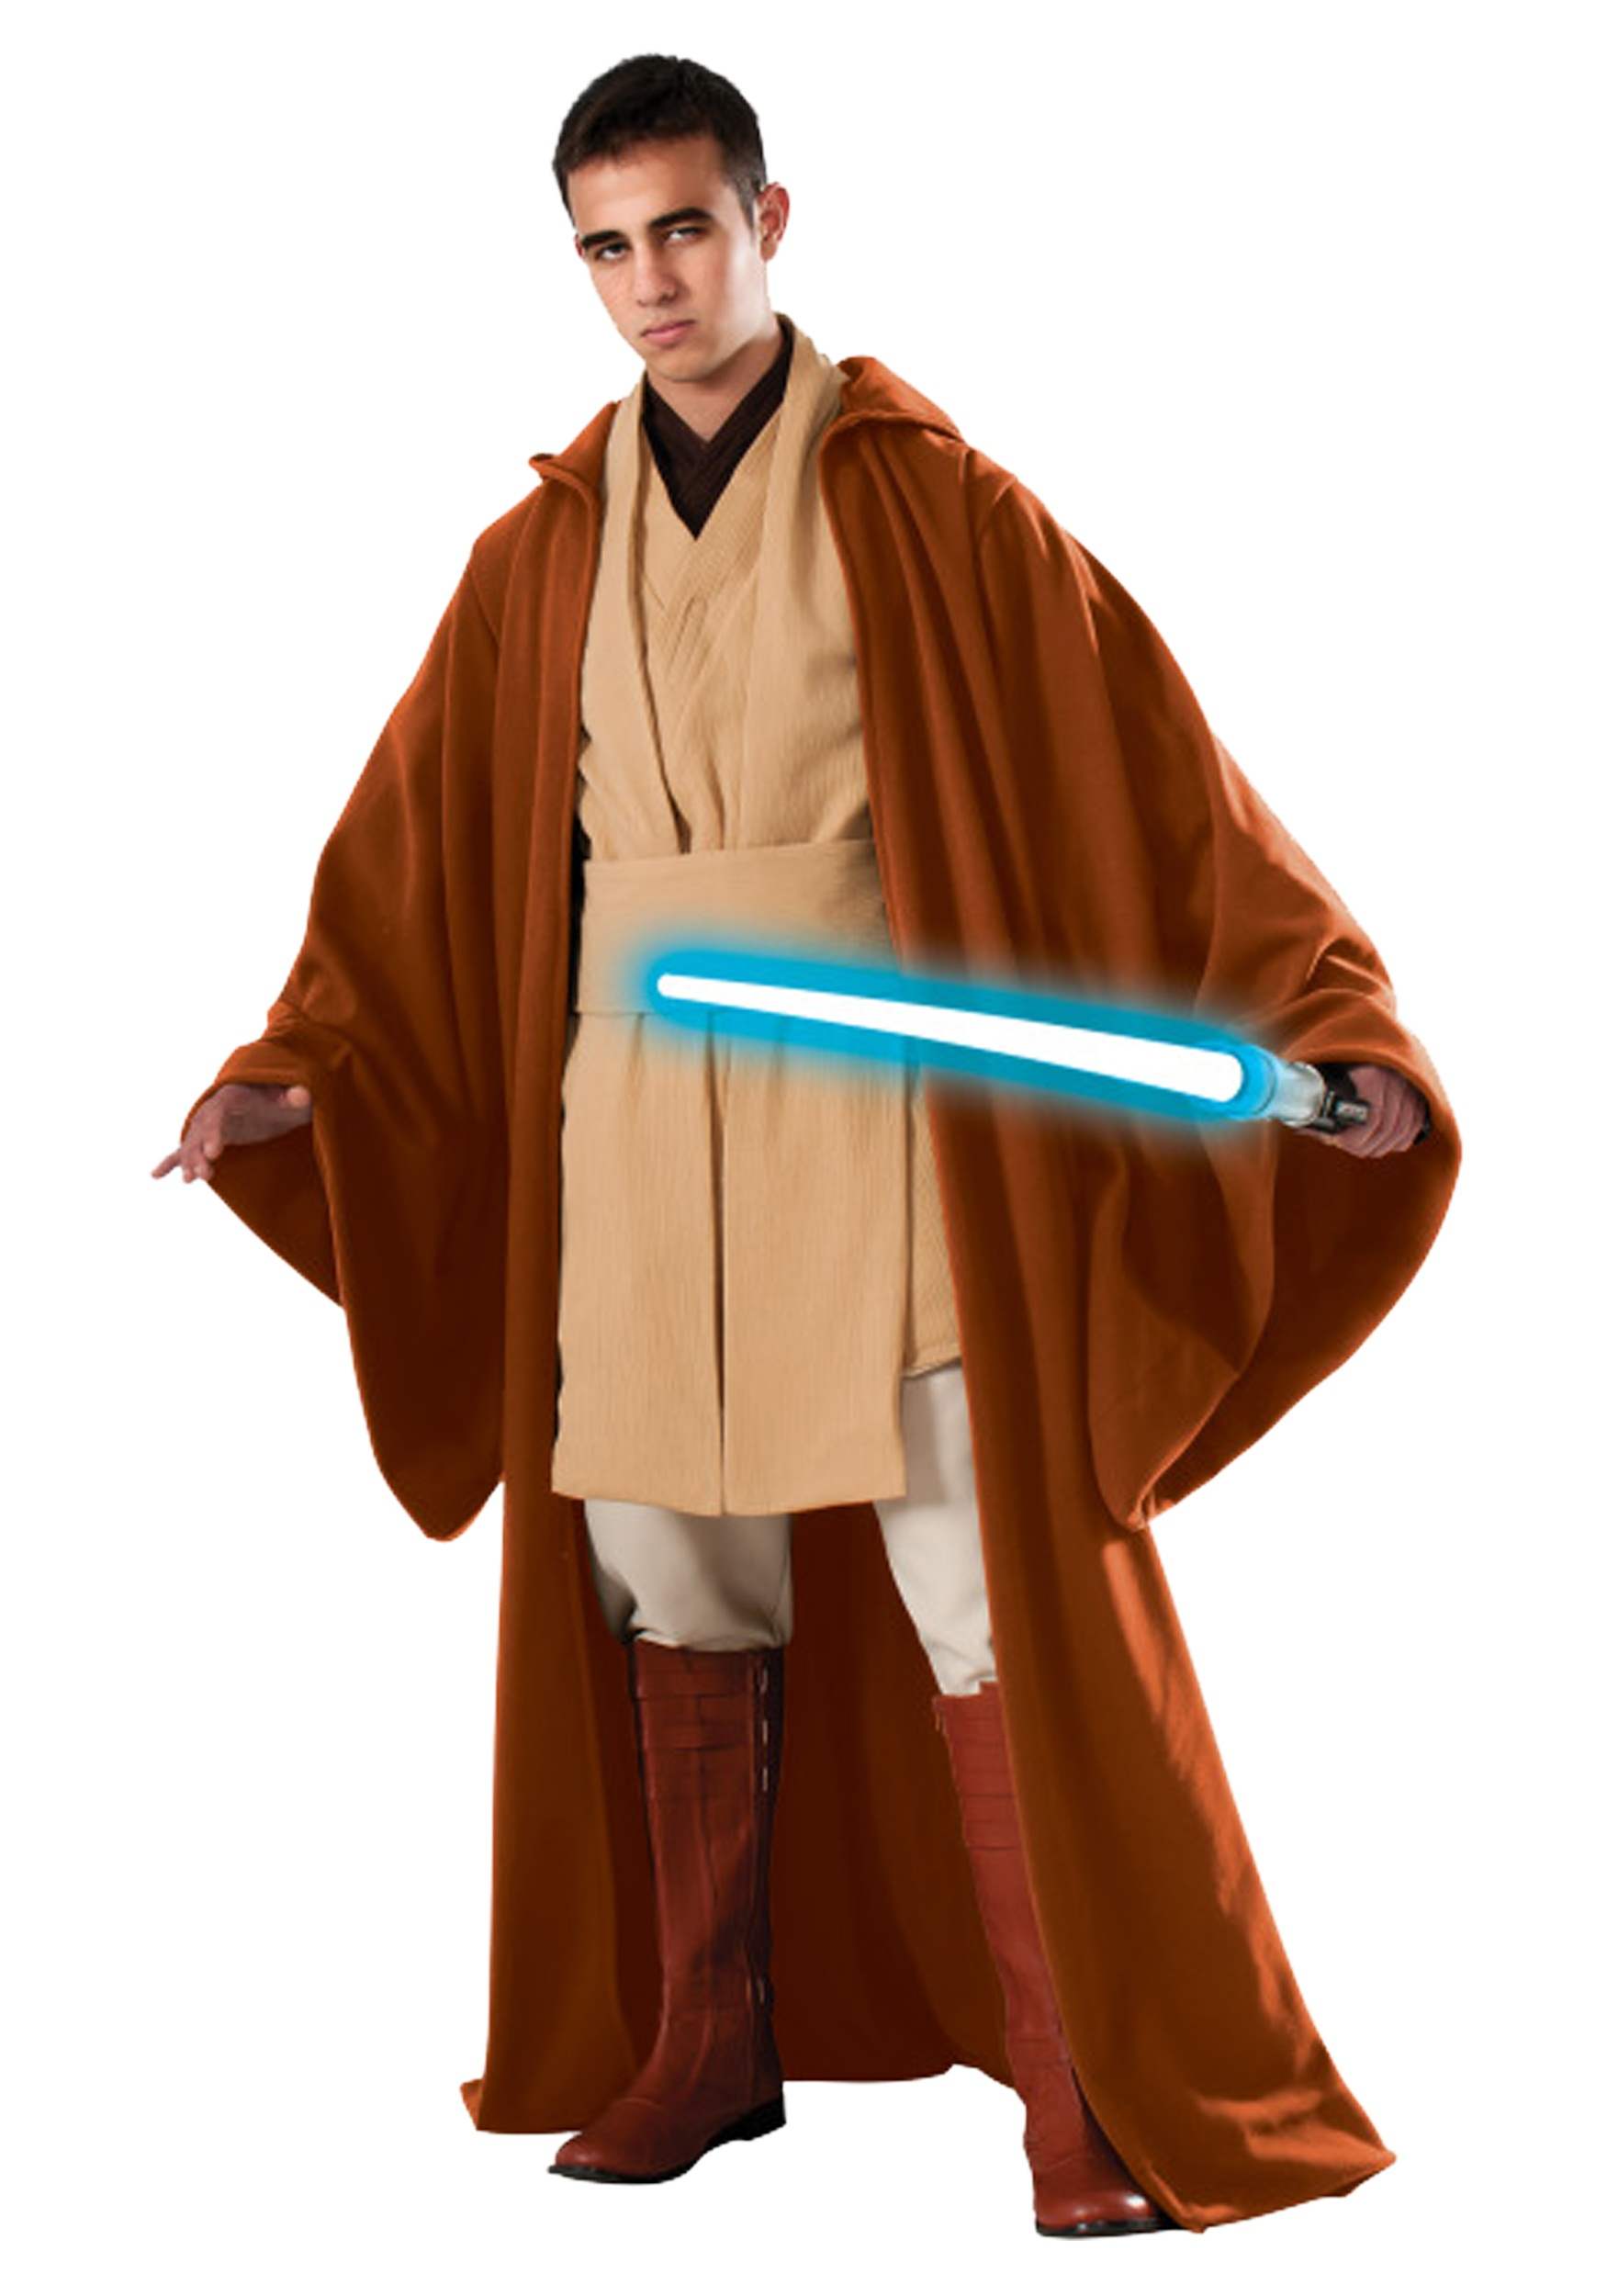 grand heritage obi wan kenobi adult costume from star wars